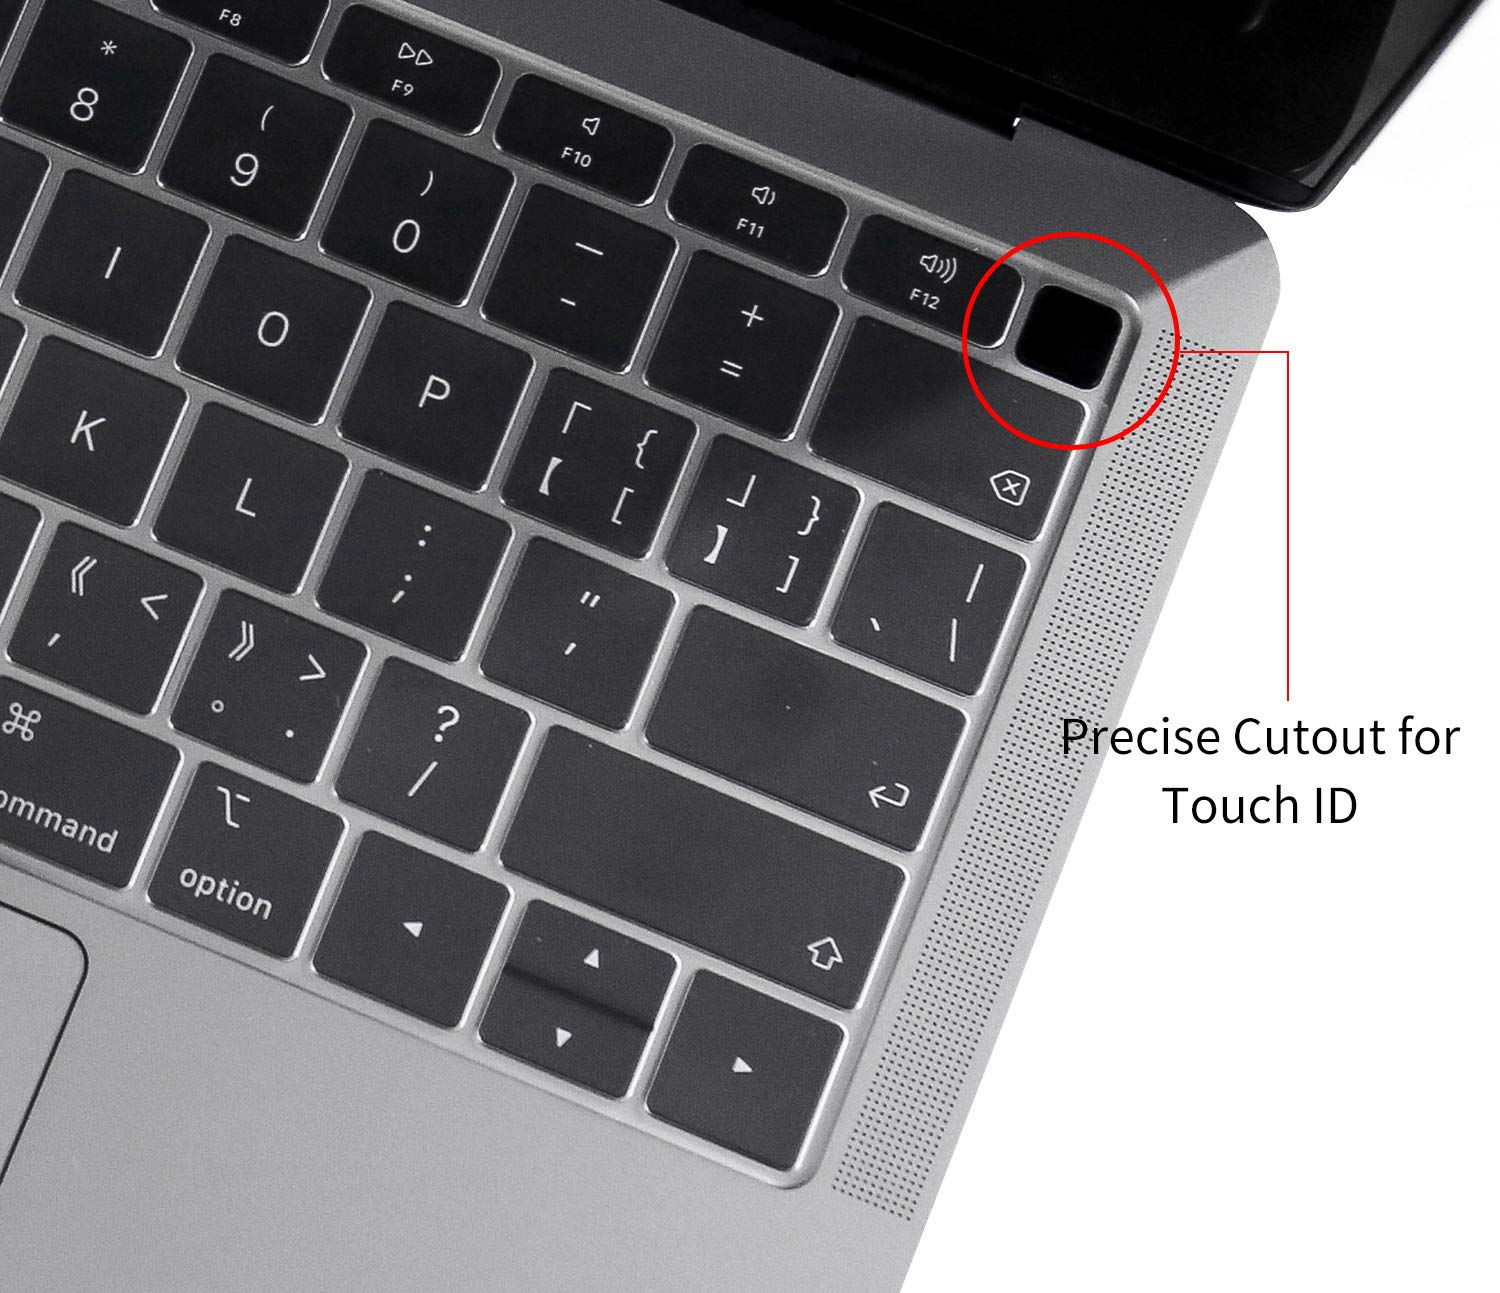 MacBook Pro 15 Inch with or w//Out Retina Display, 2015 or Older Version TPU Ultra Thin Clear Keyboard Cover for MacBook Air 13 Inch /& MacBook Pro 13 Inch